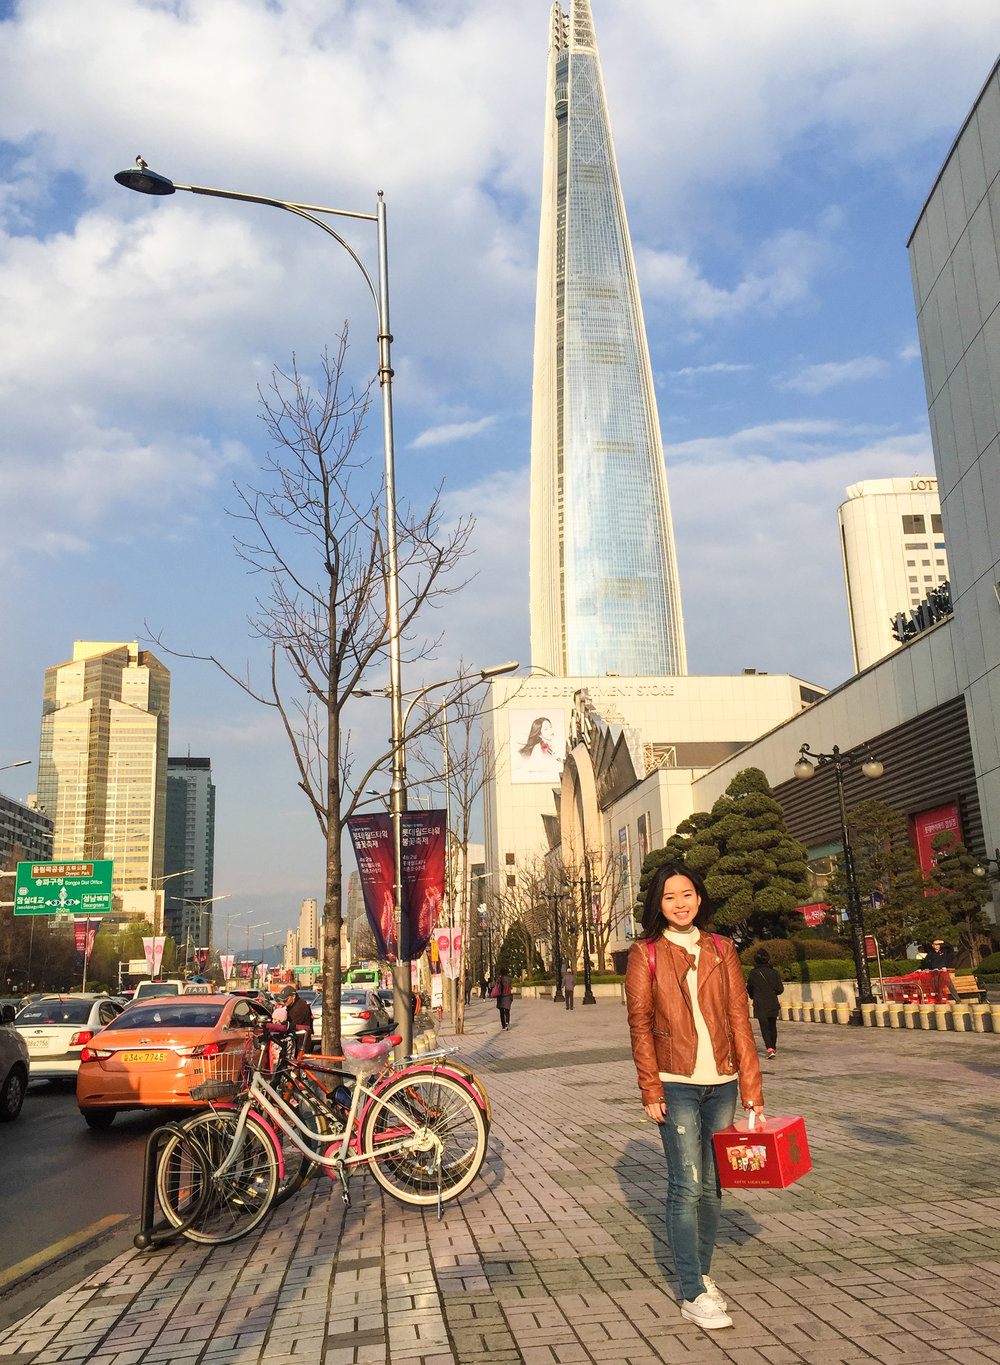 Divine Tio Lotte World Tower Seoul South Korea